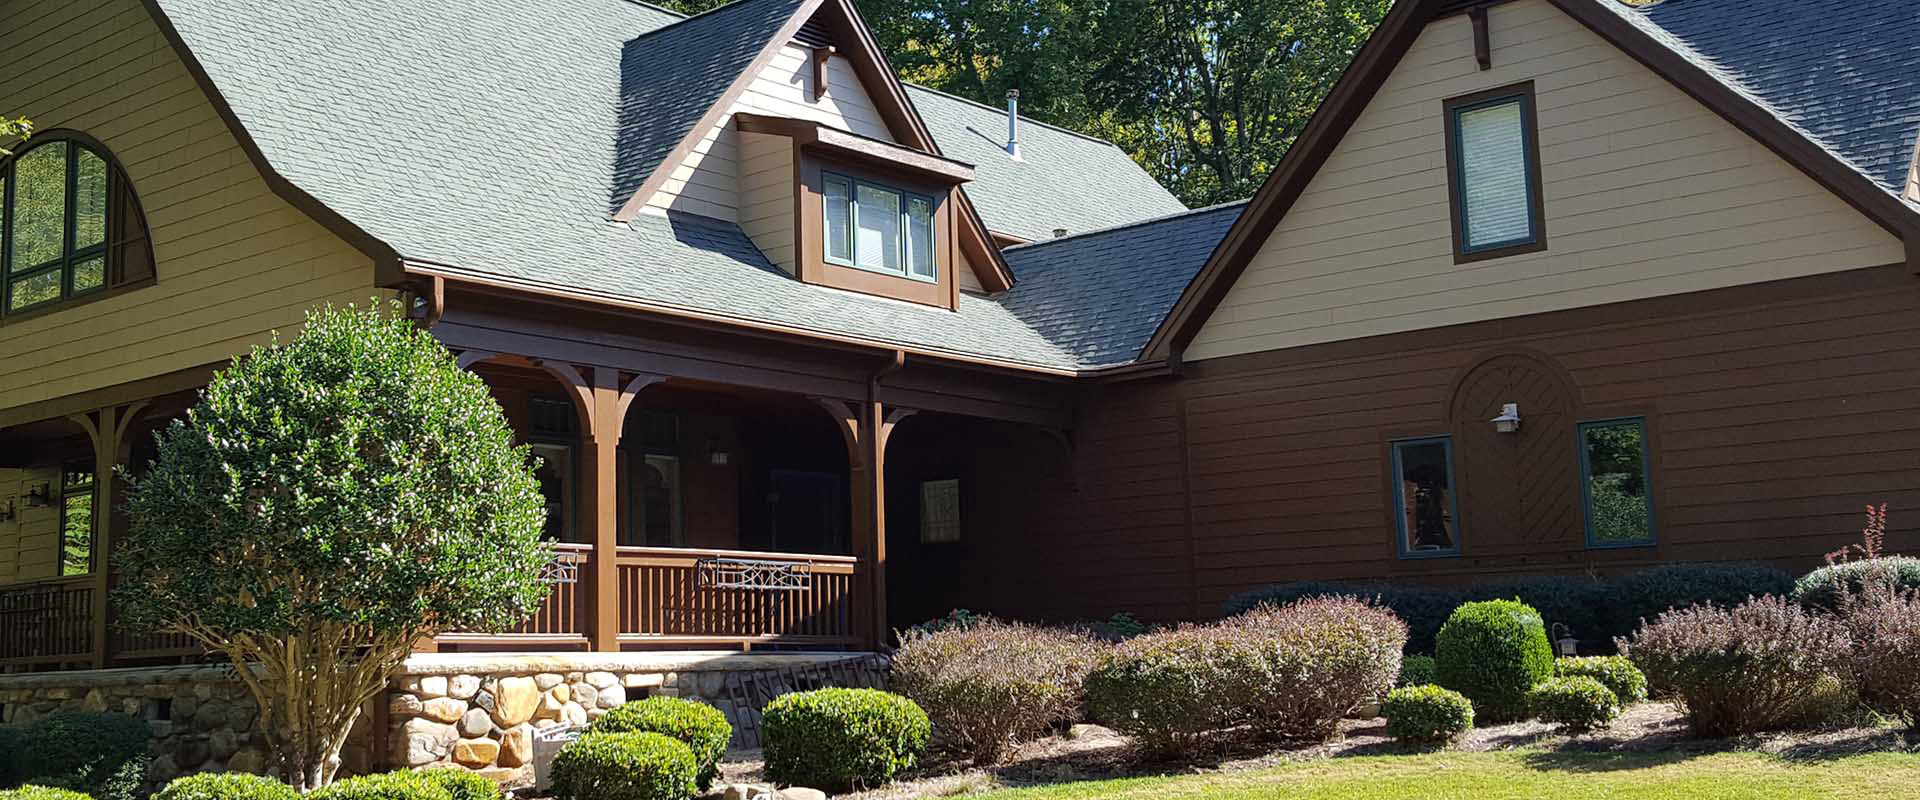 Raleigh Home Painting Contractors